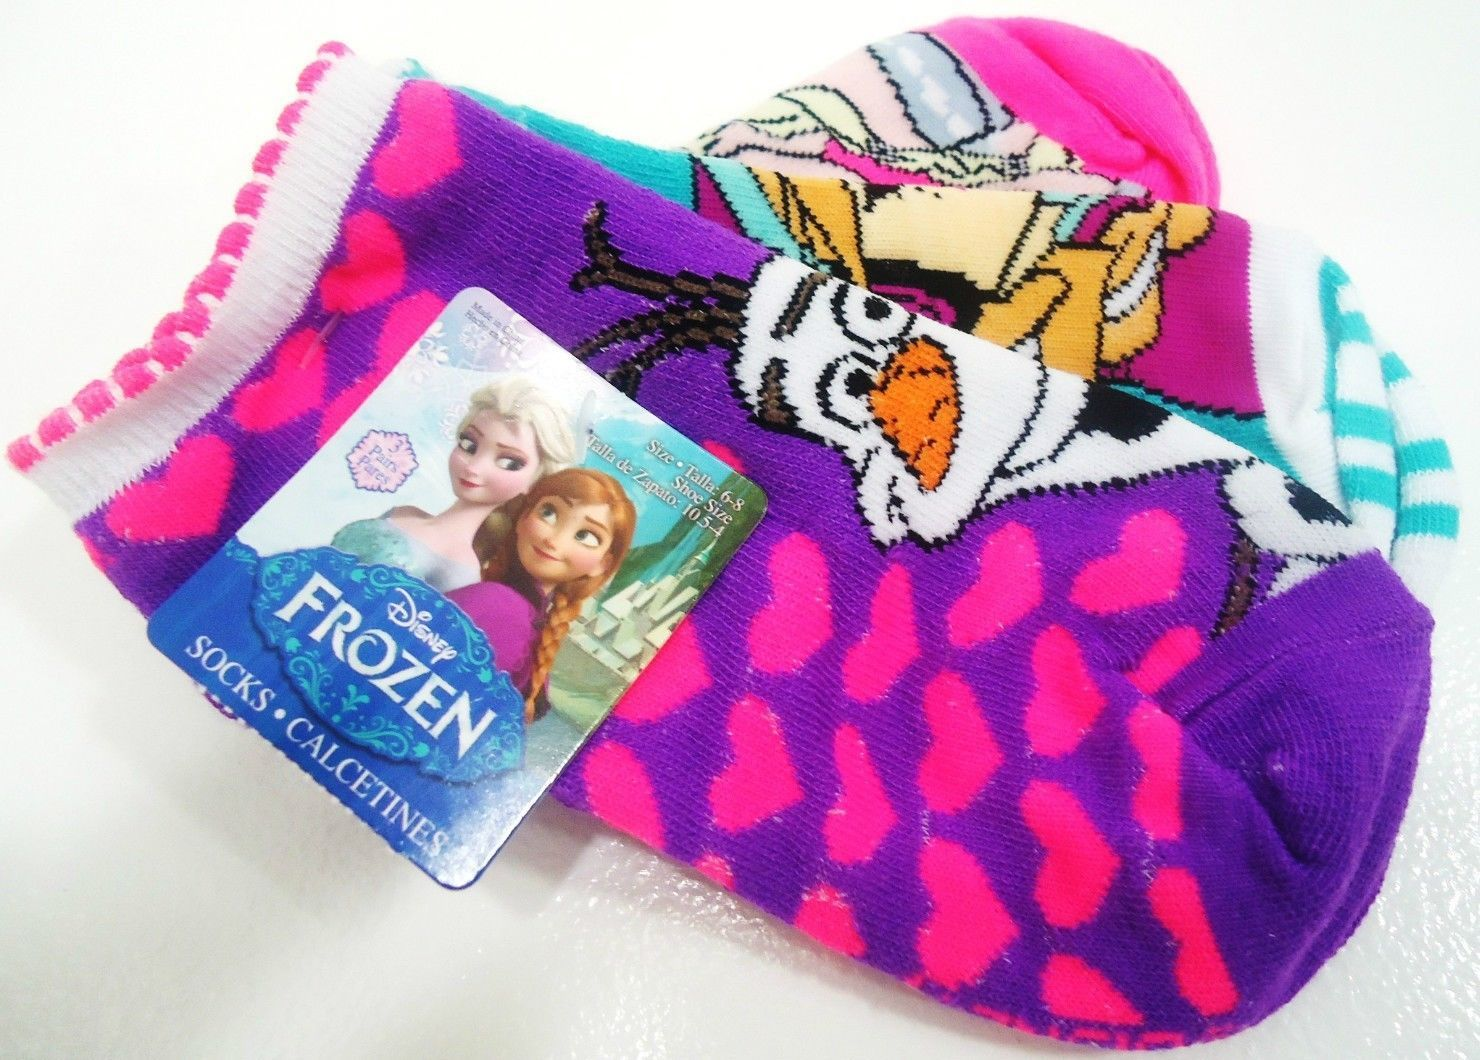 DISNEY - FROZEN - GIRL'S - (3) PACK - SOCKS - PURPLE - PINK - AQUA - BRAND NEW